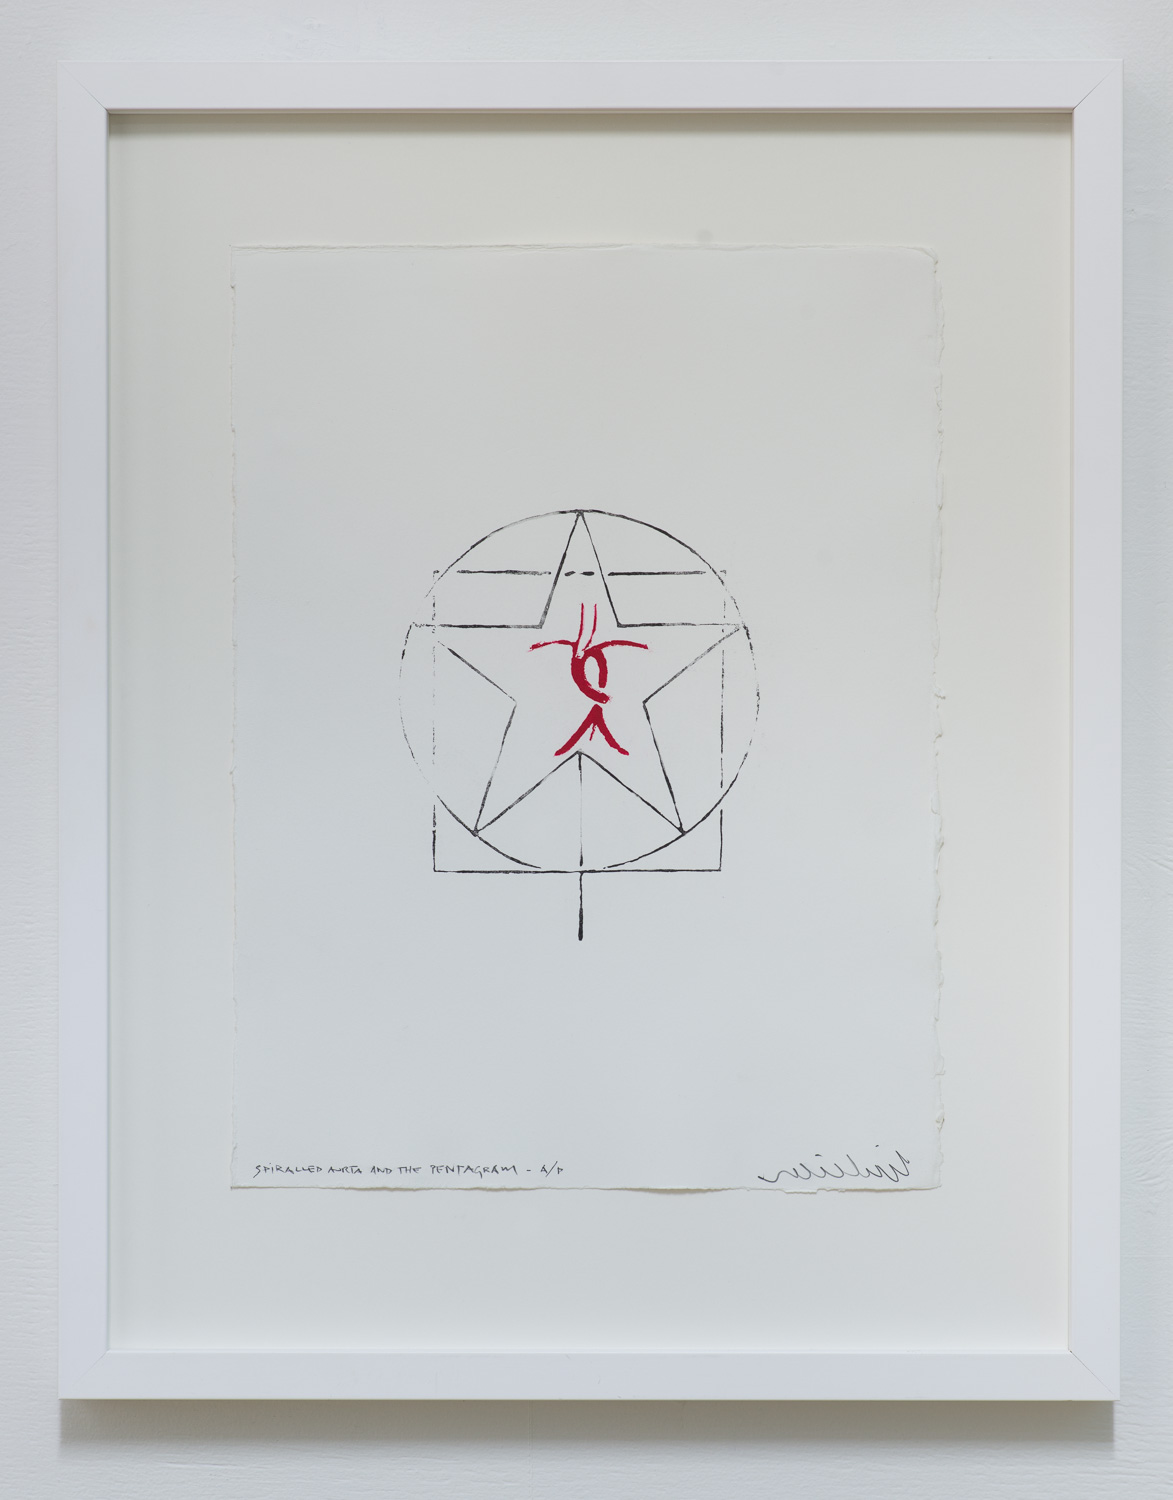 Spiralled Aorta and the Pentagram  2015  Printed from acid etched copper plates, Limited edition, 1/10 + AP  Frame: 540 x 430 x 35mm/ image: 375 x 280mm  Available